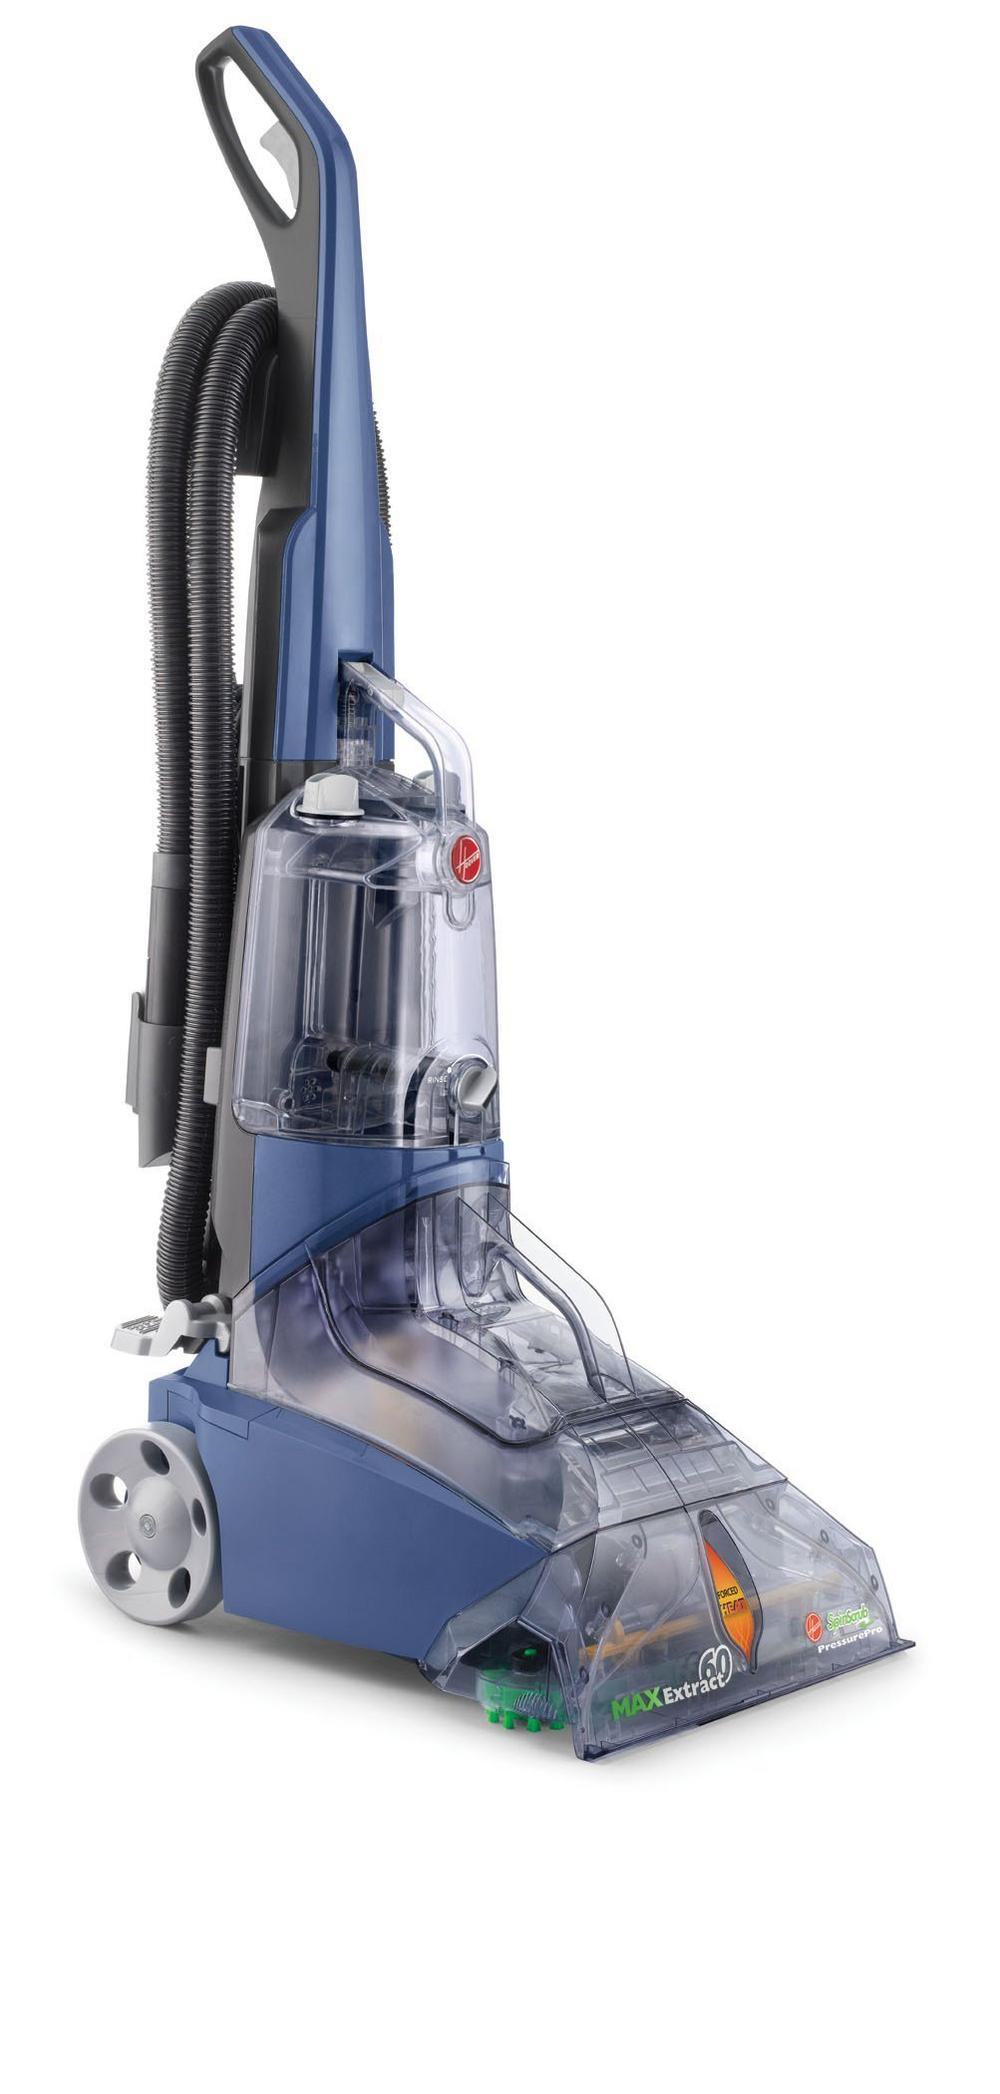 Reconditioned Max Extract 60 Pressure Pro Deep Carpet Cleaner2